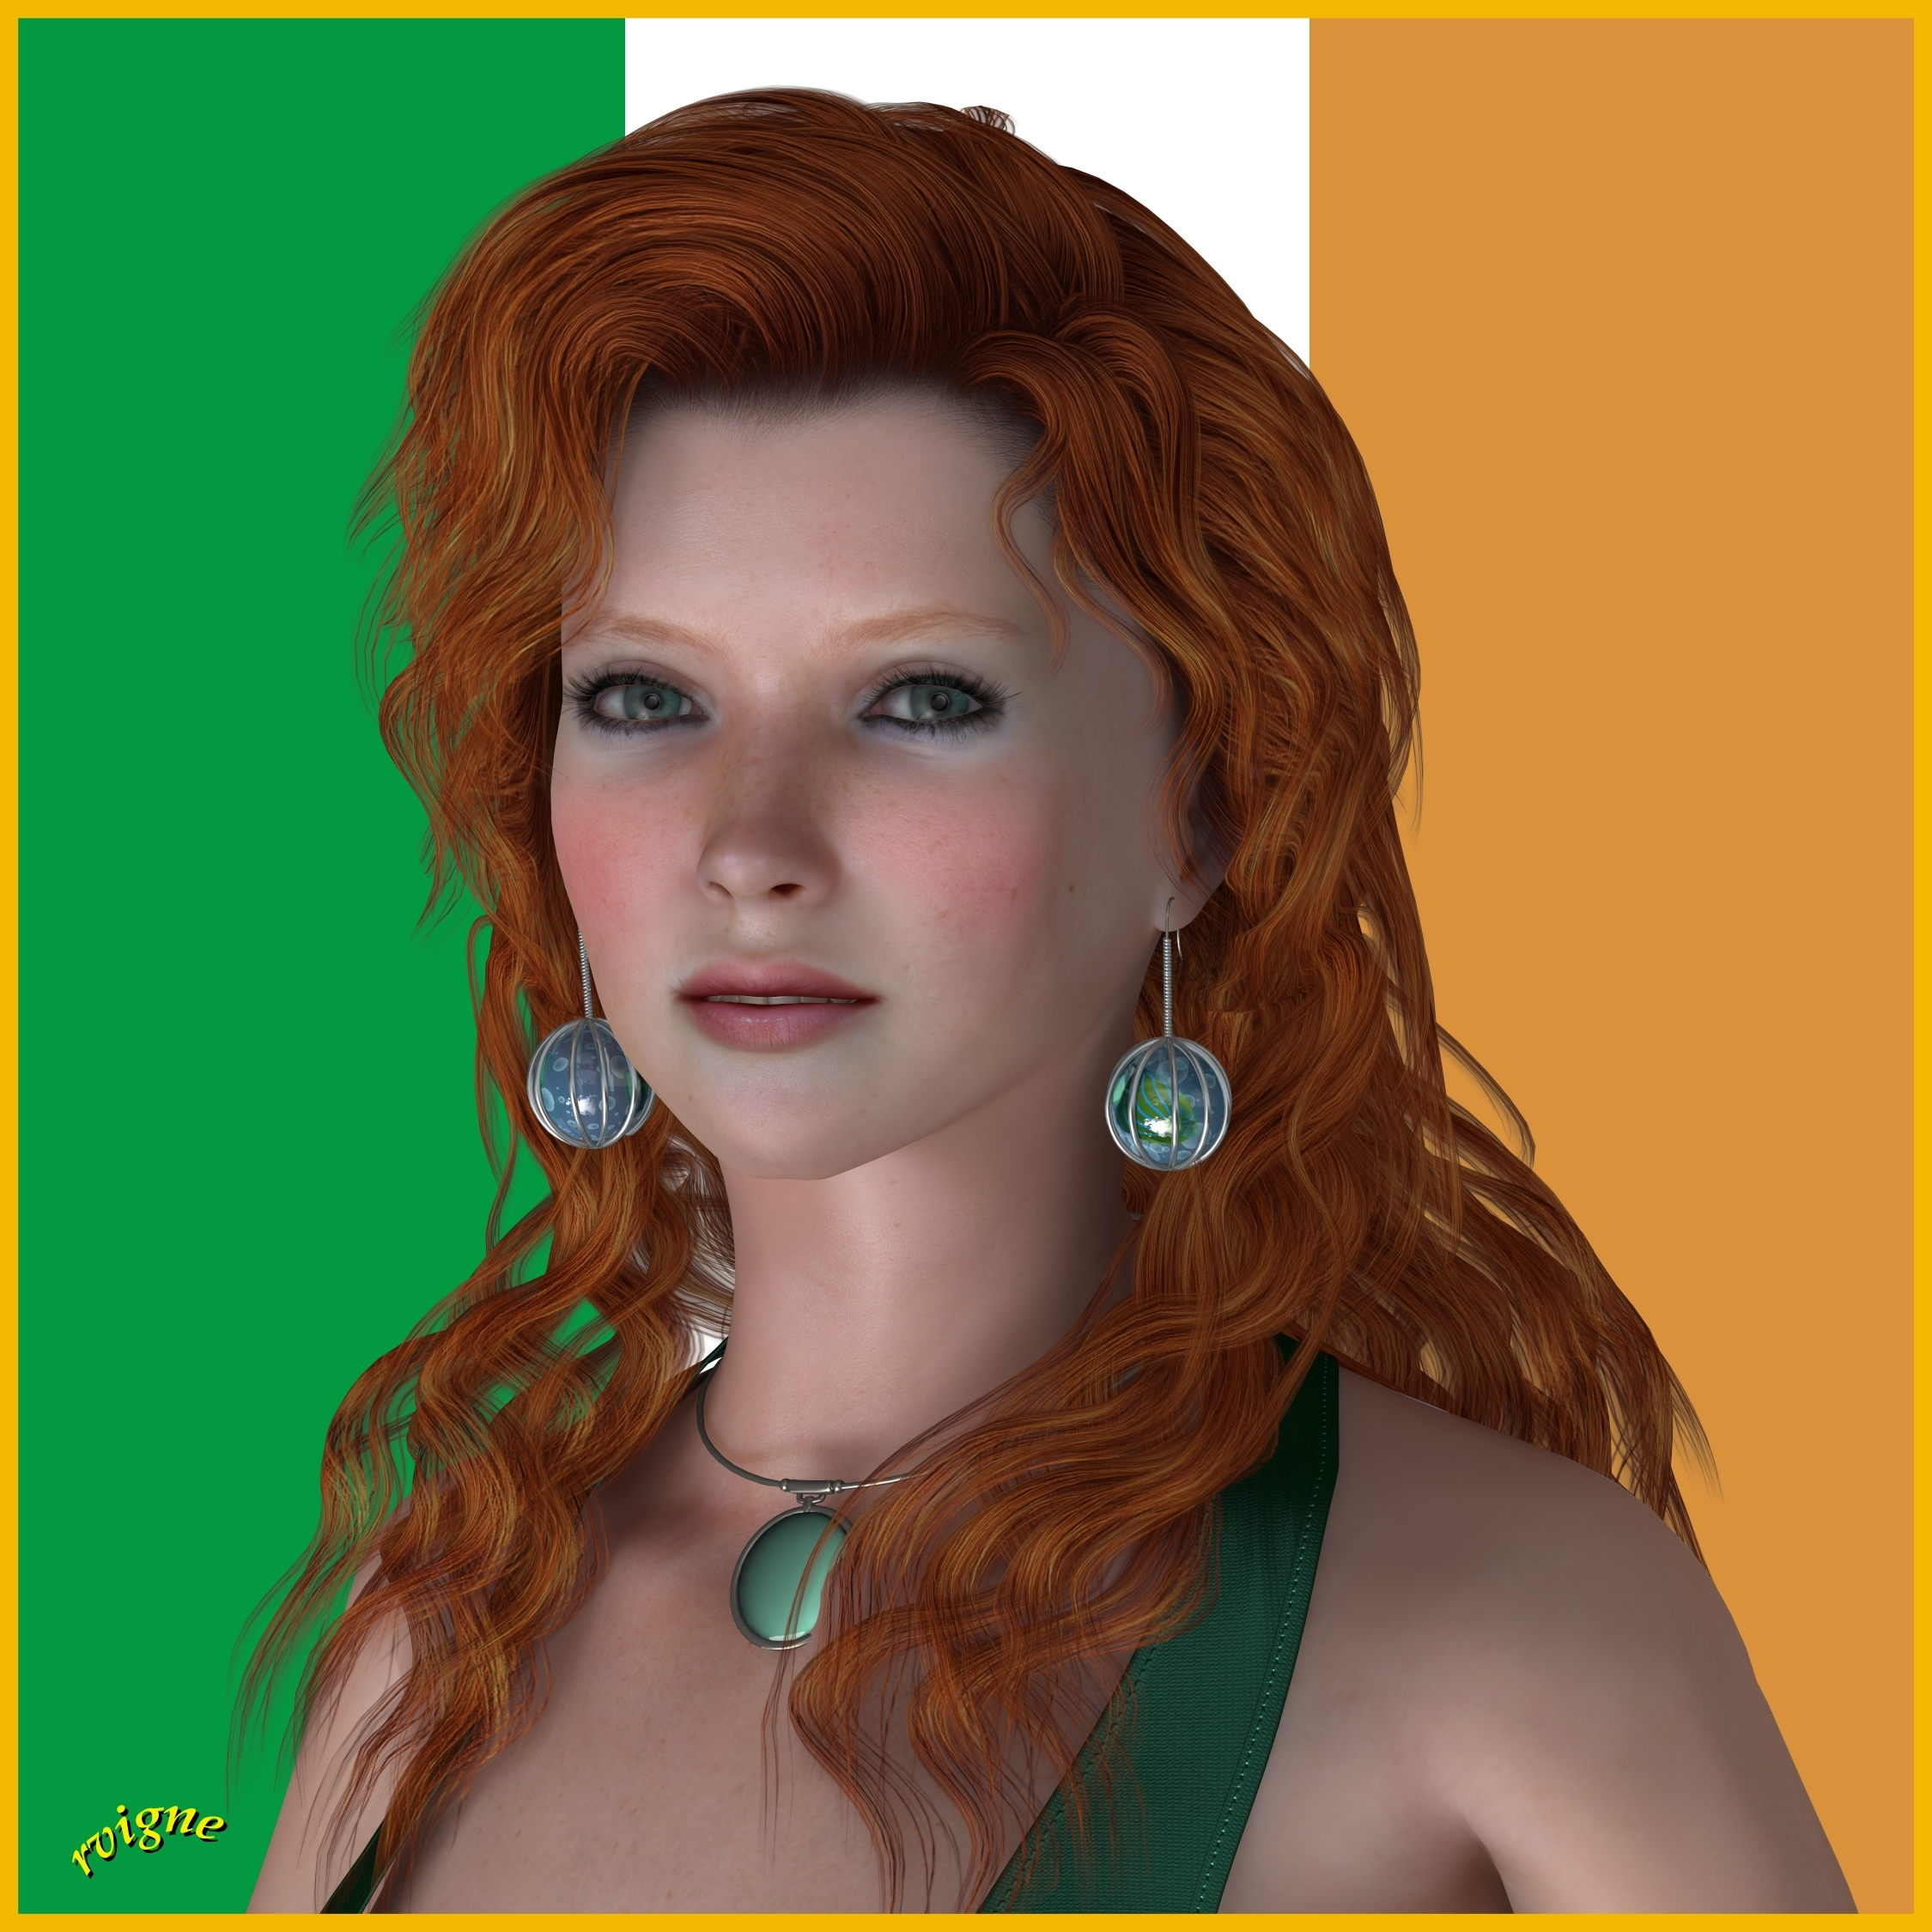 Irish Model by Vigne33 Poser Realism